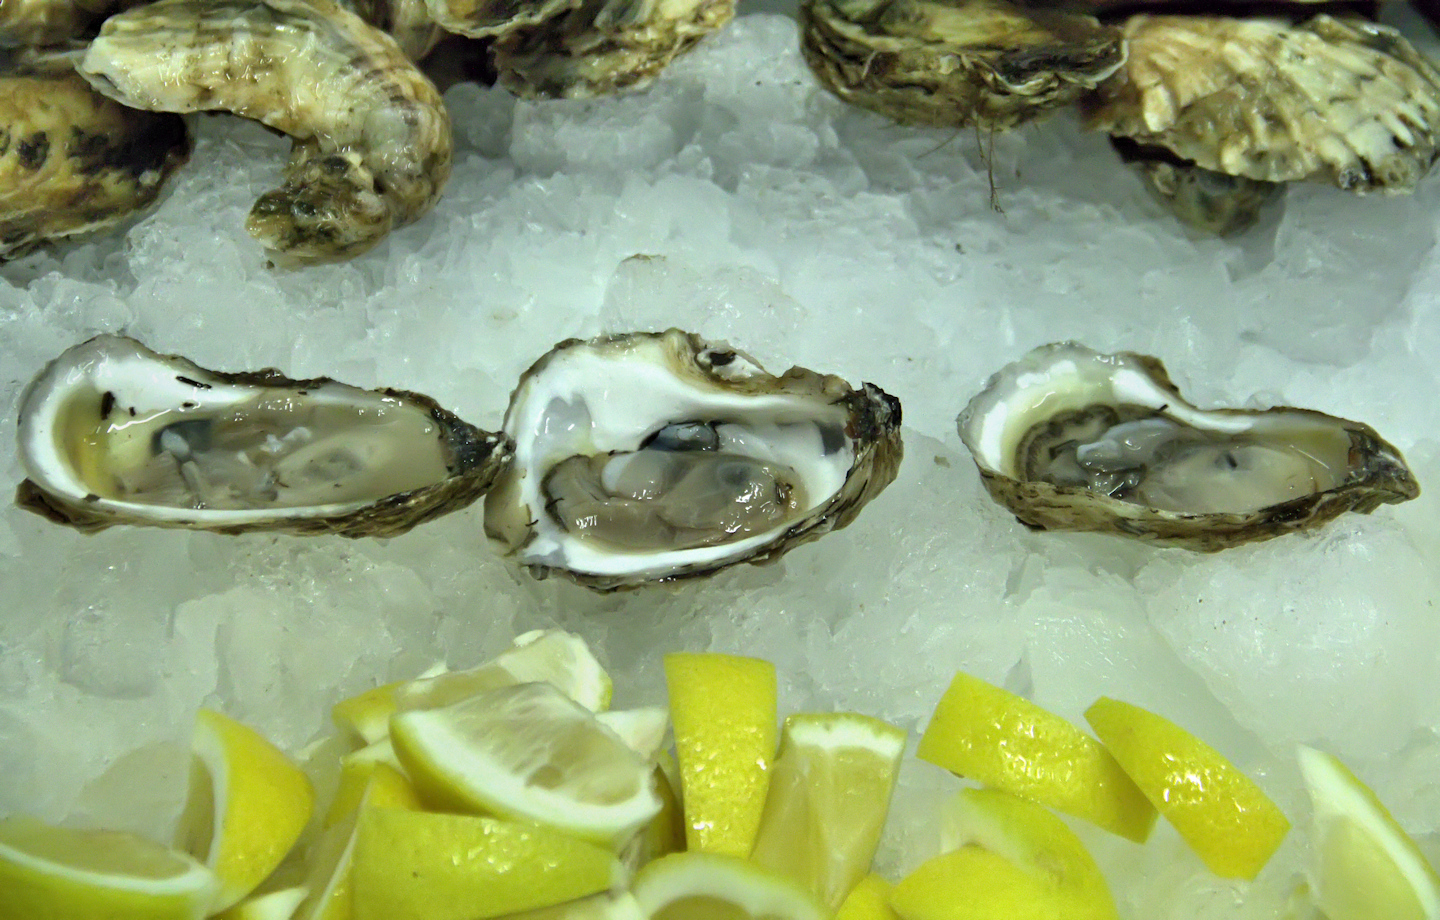 Florida-Apalachicola-oysters-Panacea-Oyster-Co-Op